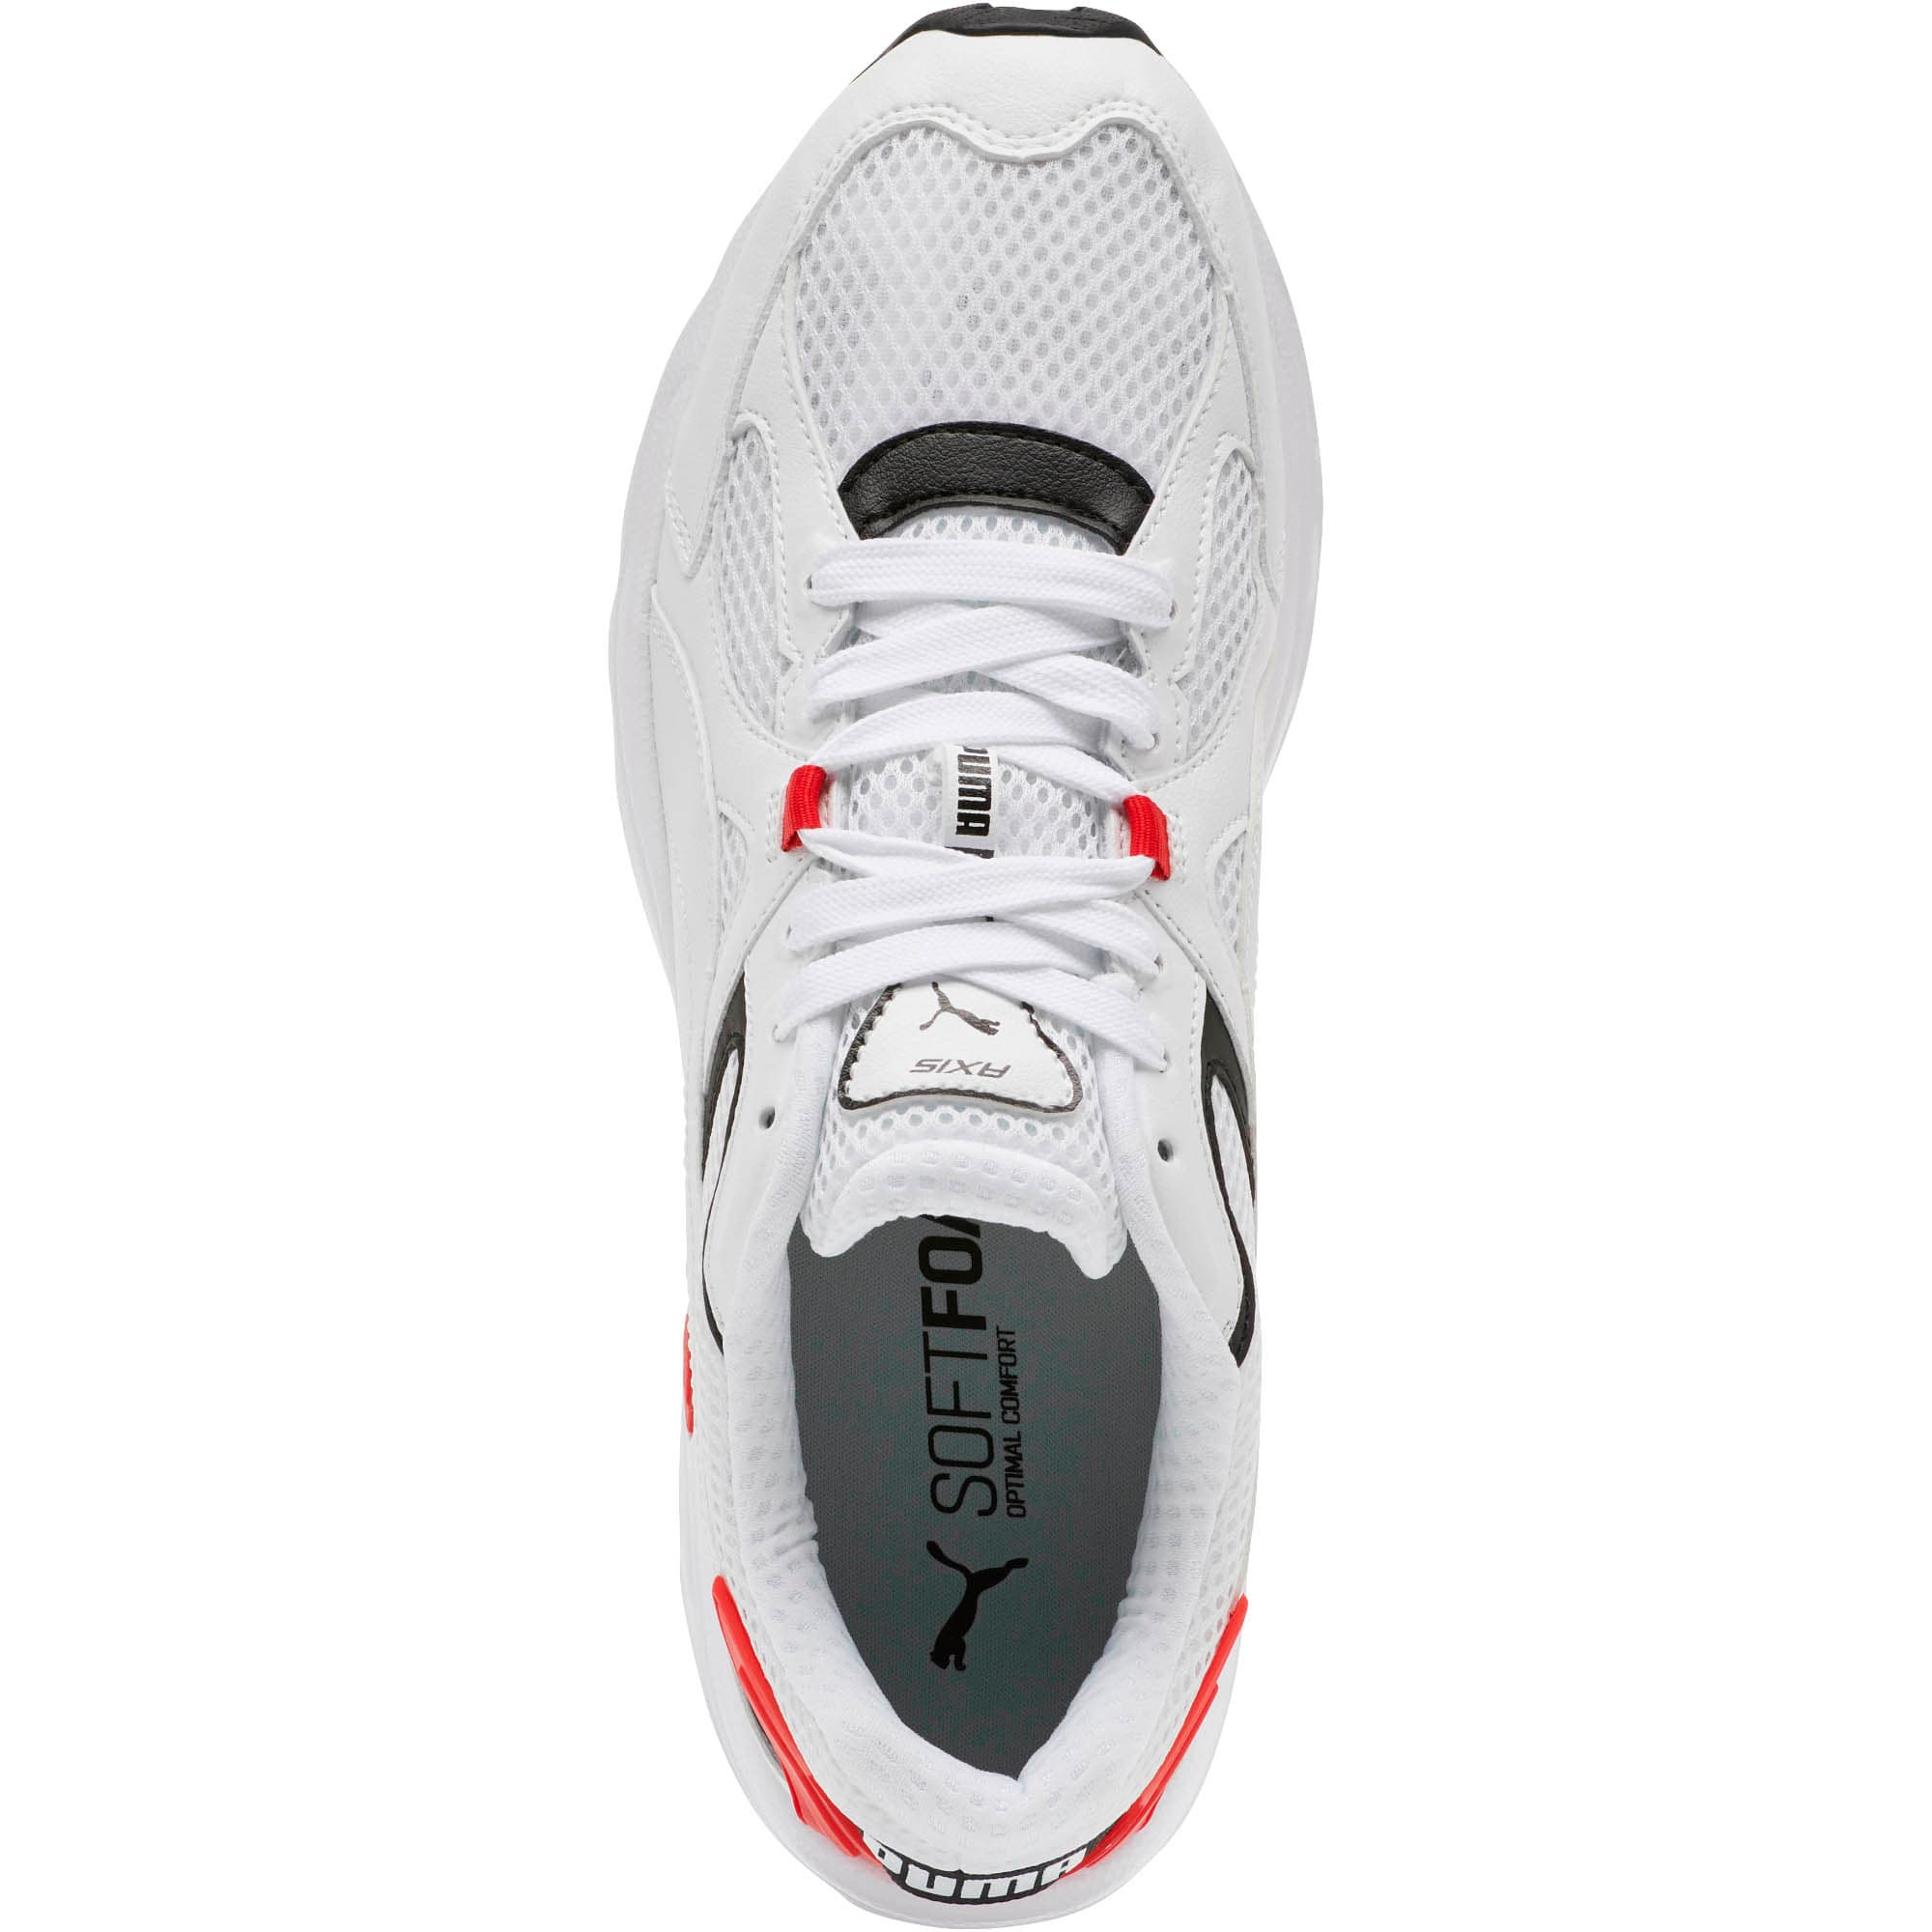 Thumbnail 5 of Axis Plus 90s Sneakers, Puma White-Puma Black-Red, medium